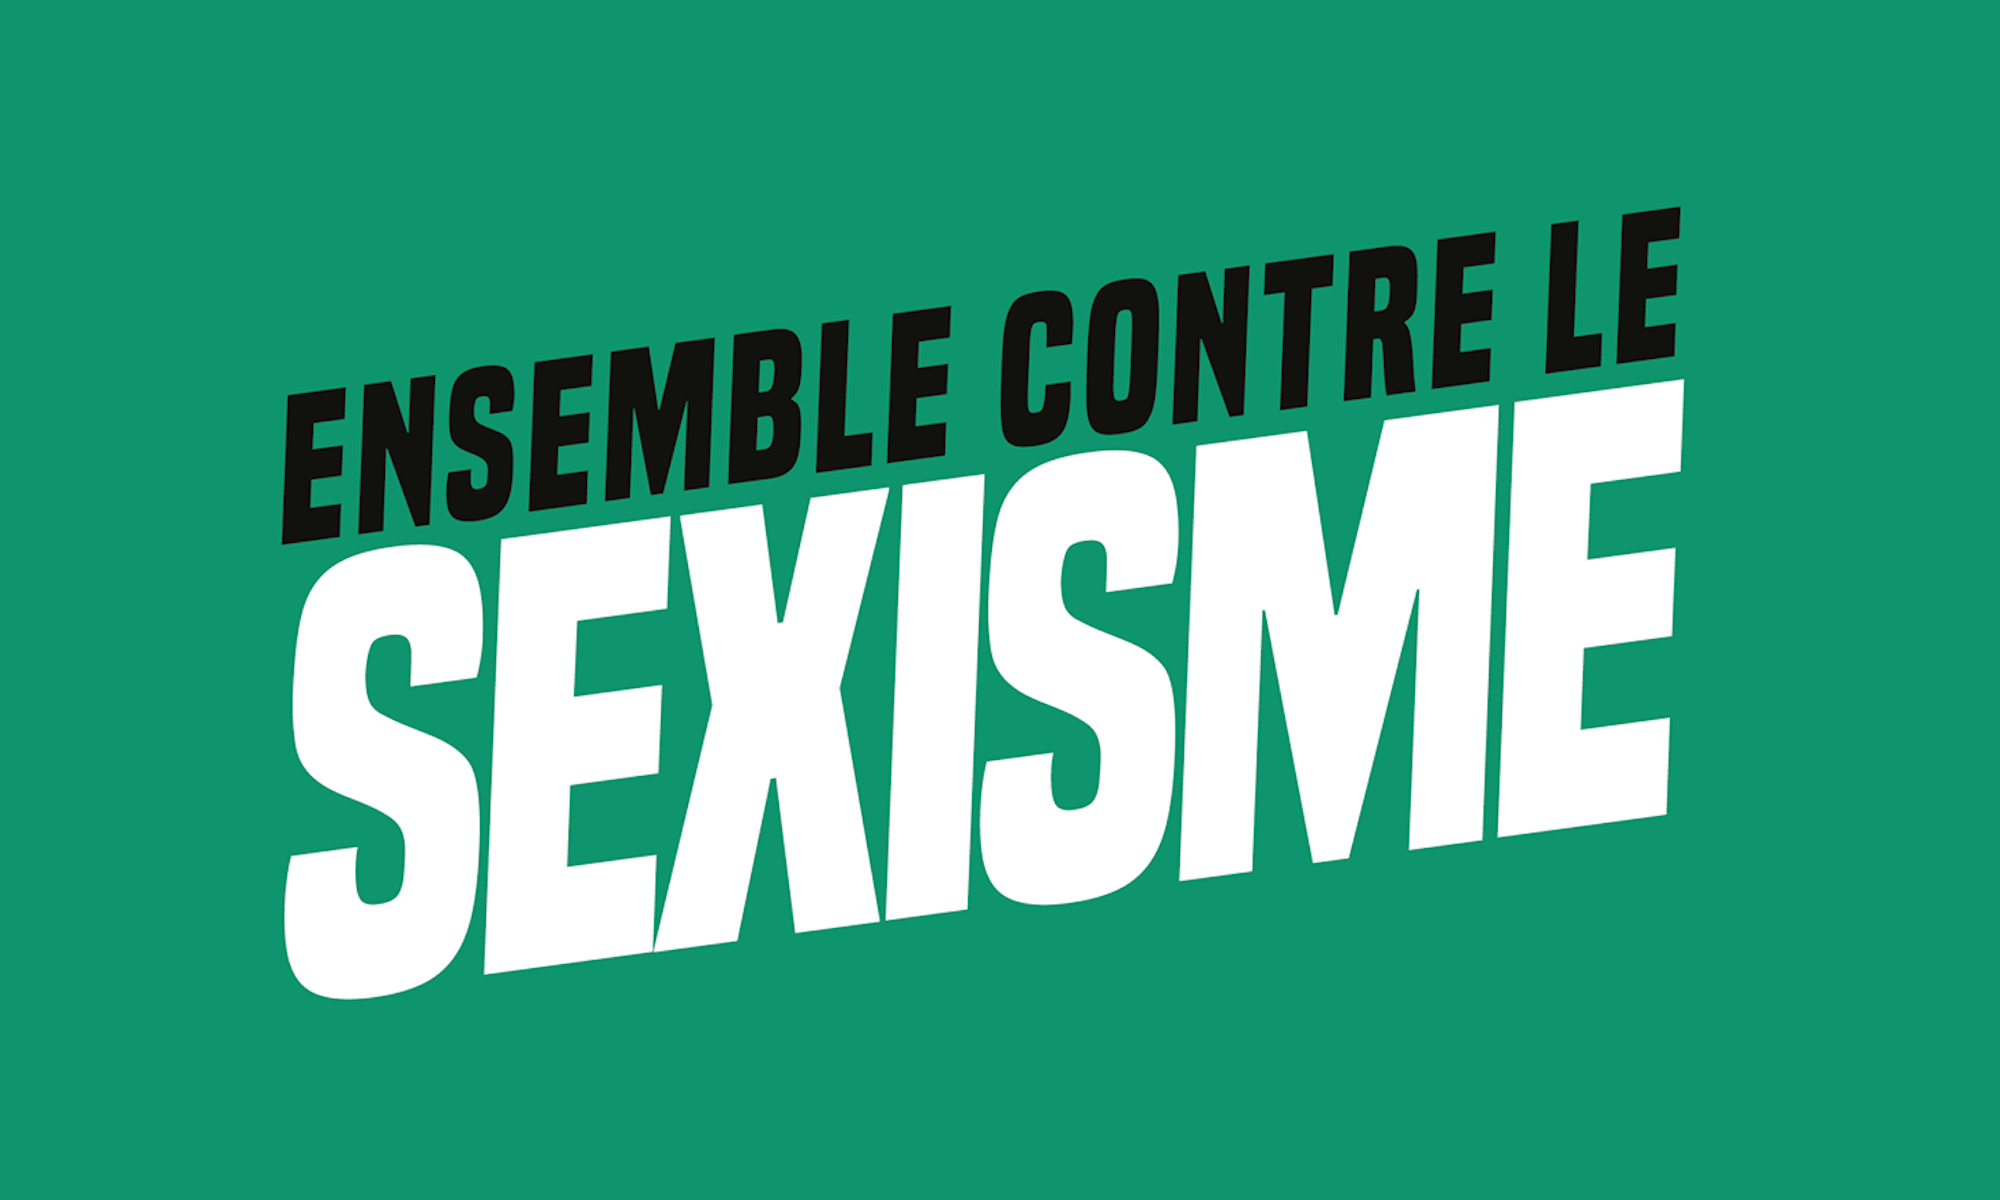 Ensemble contre le sexisme